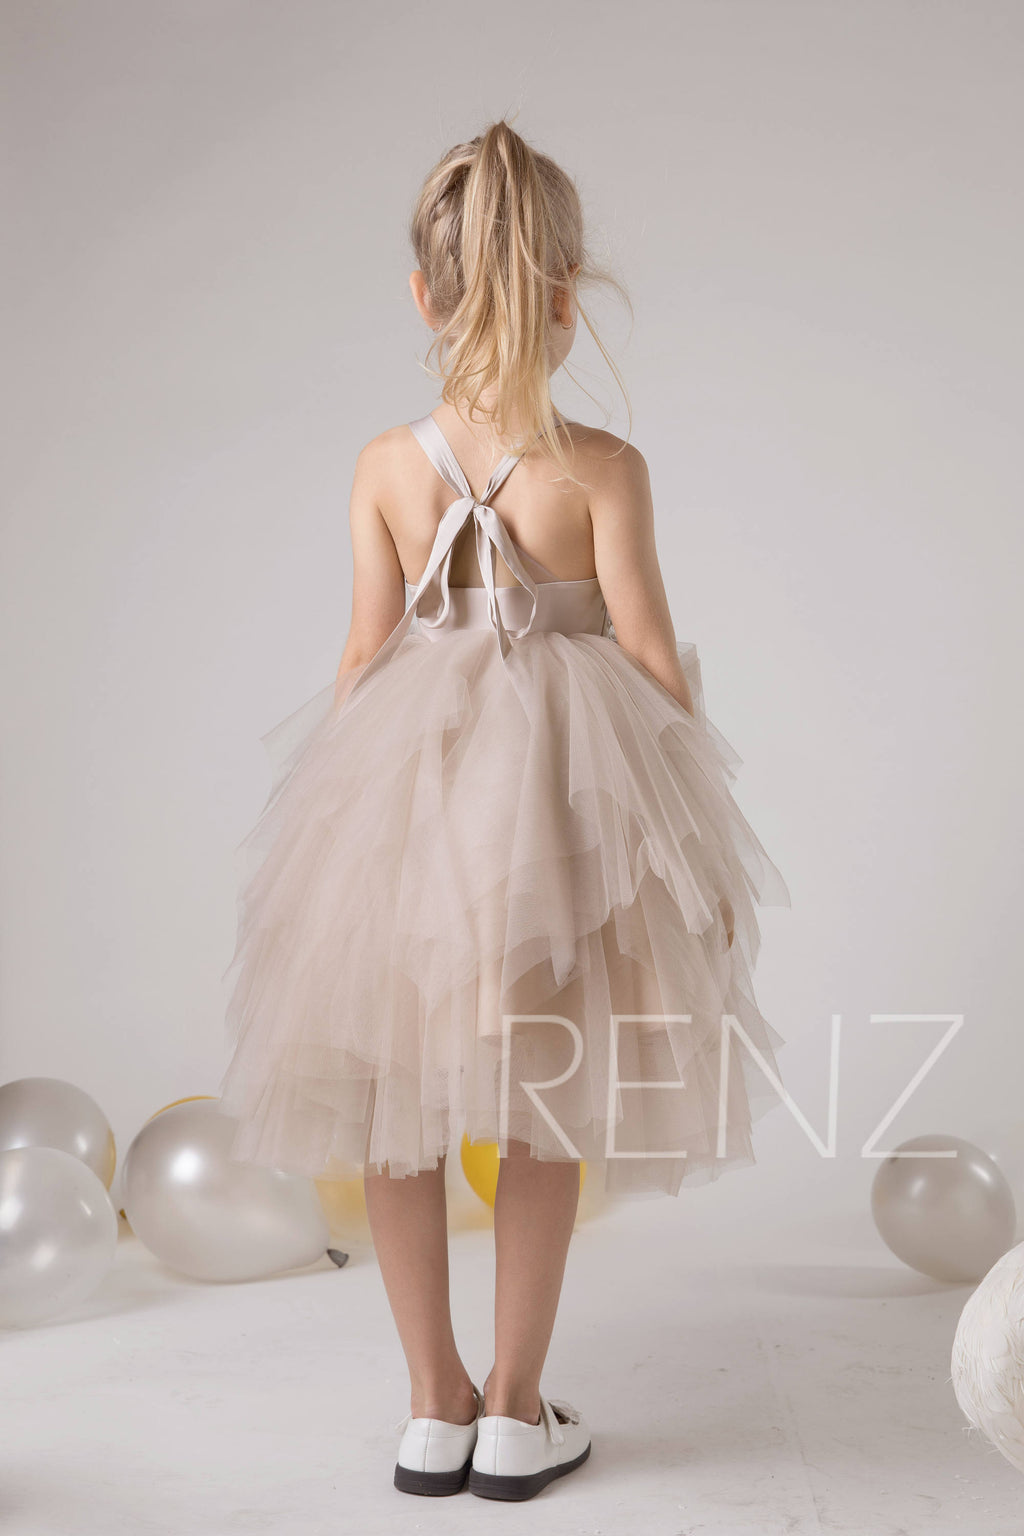 Flower Girl Dress Pale Khaki Tulle Dress Off White Sequin Lace Dress Puffy Party Dress Ruffle Princess Dress Junior Bridesmaid Dress(HK597)